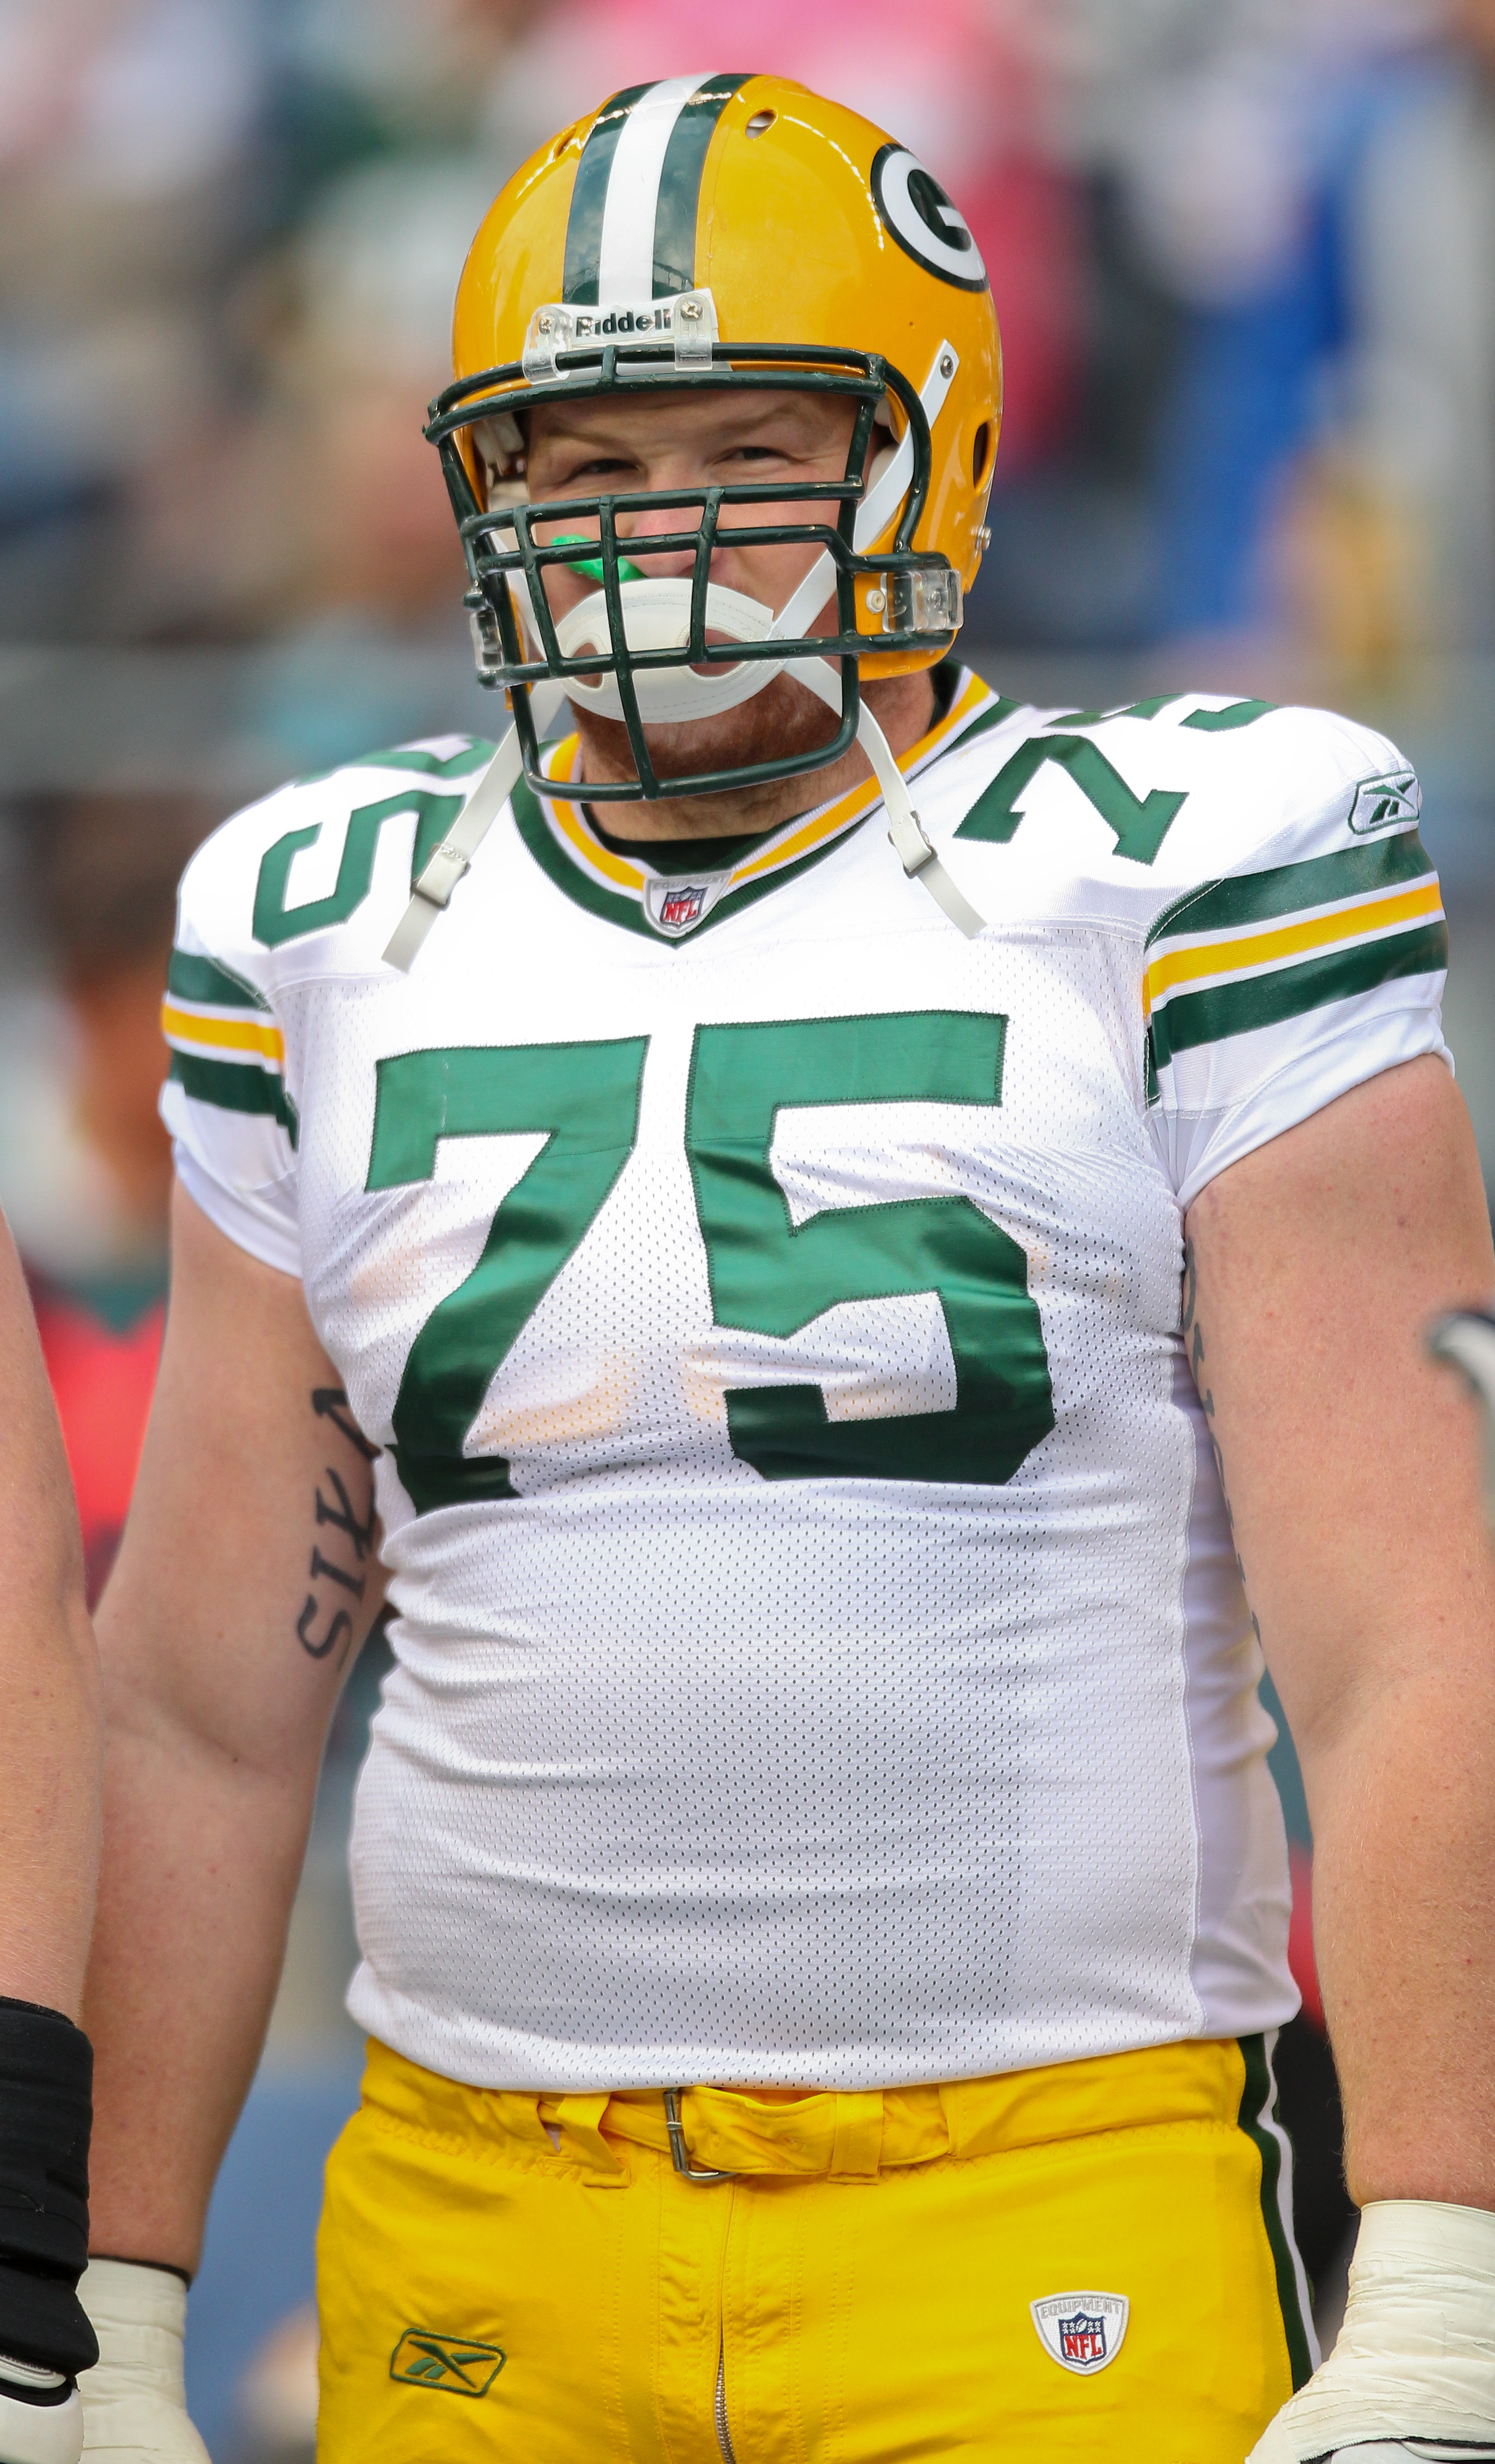 SEATTLE - AUGUST 21:  Guard Bryan Bulaga #75 of the Green Bay Packers looks on prior to the preseason game against the Seattle Seahawks at Qwest Field on August 21, 2010 in Seattle, Washington. (Photo by Otto Greule Jr/Getty Images)